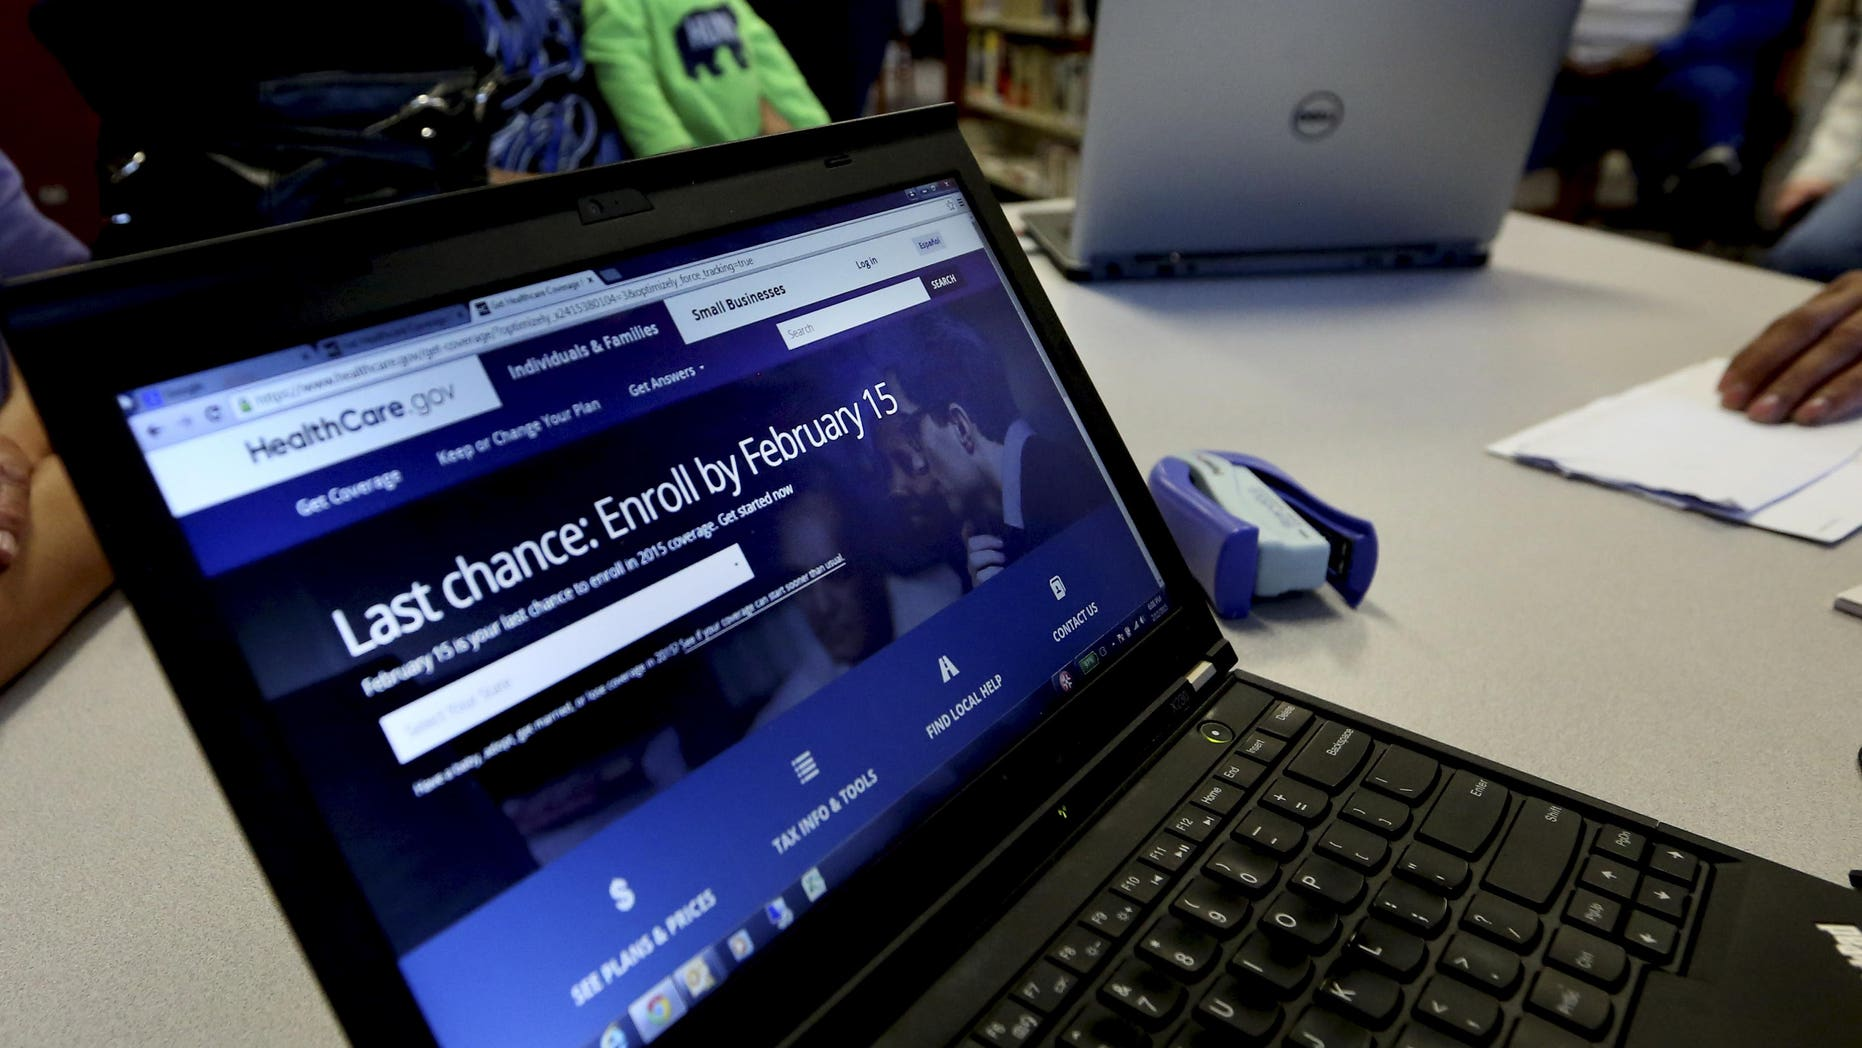 In this Thursday, Feb. 12, 2015 photo, a laptop shows the HealthCare.com web site during an Affordable Care Act enrollment event at the Fort Worth Public Library in Fort Worth, Texas. For the second year in a row, millions of Americans have signed up for subsidized health insurance under President Barack Obama's law. But as the 2015 sign-up season draws to a close Sunday, the future of the Affordable Care Act remains in doubt.  (AP Photo/LM Otero)